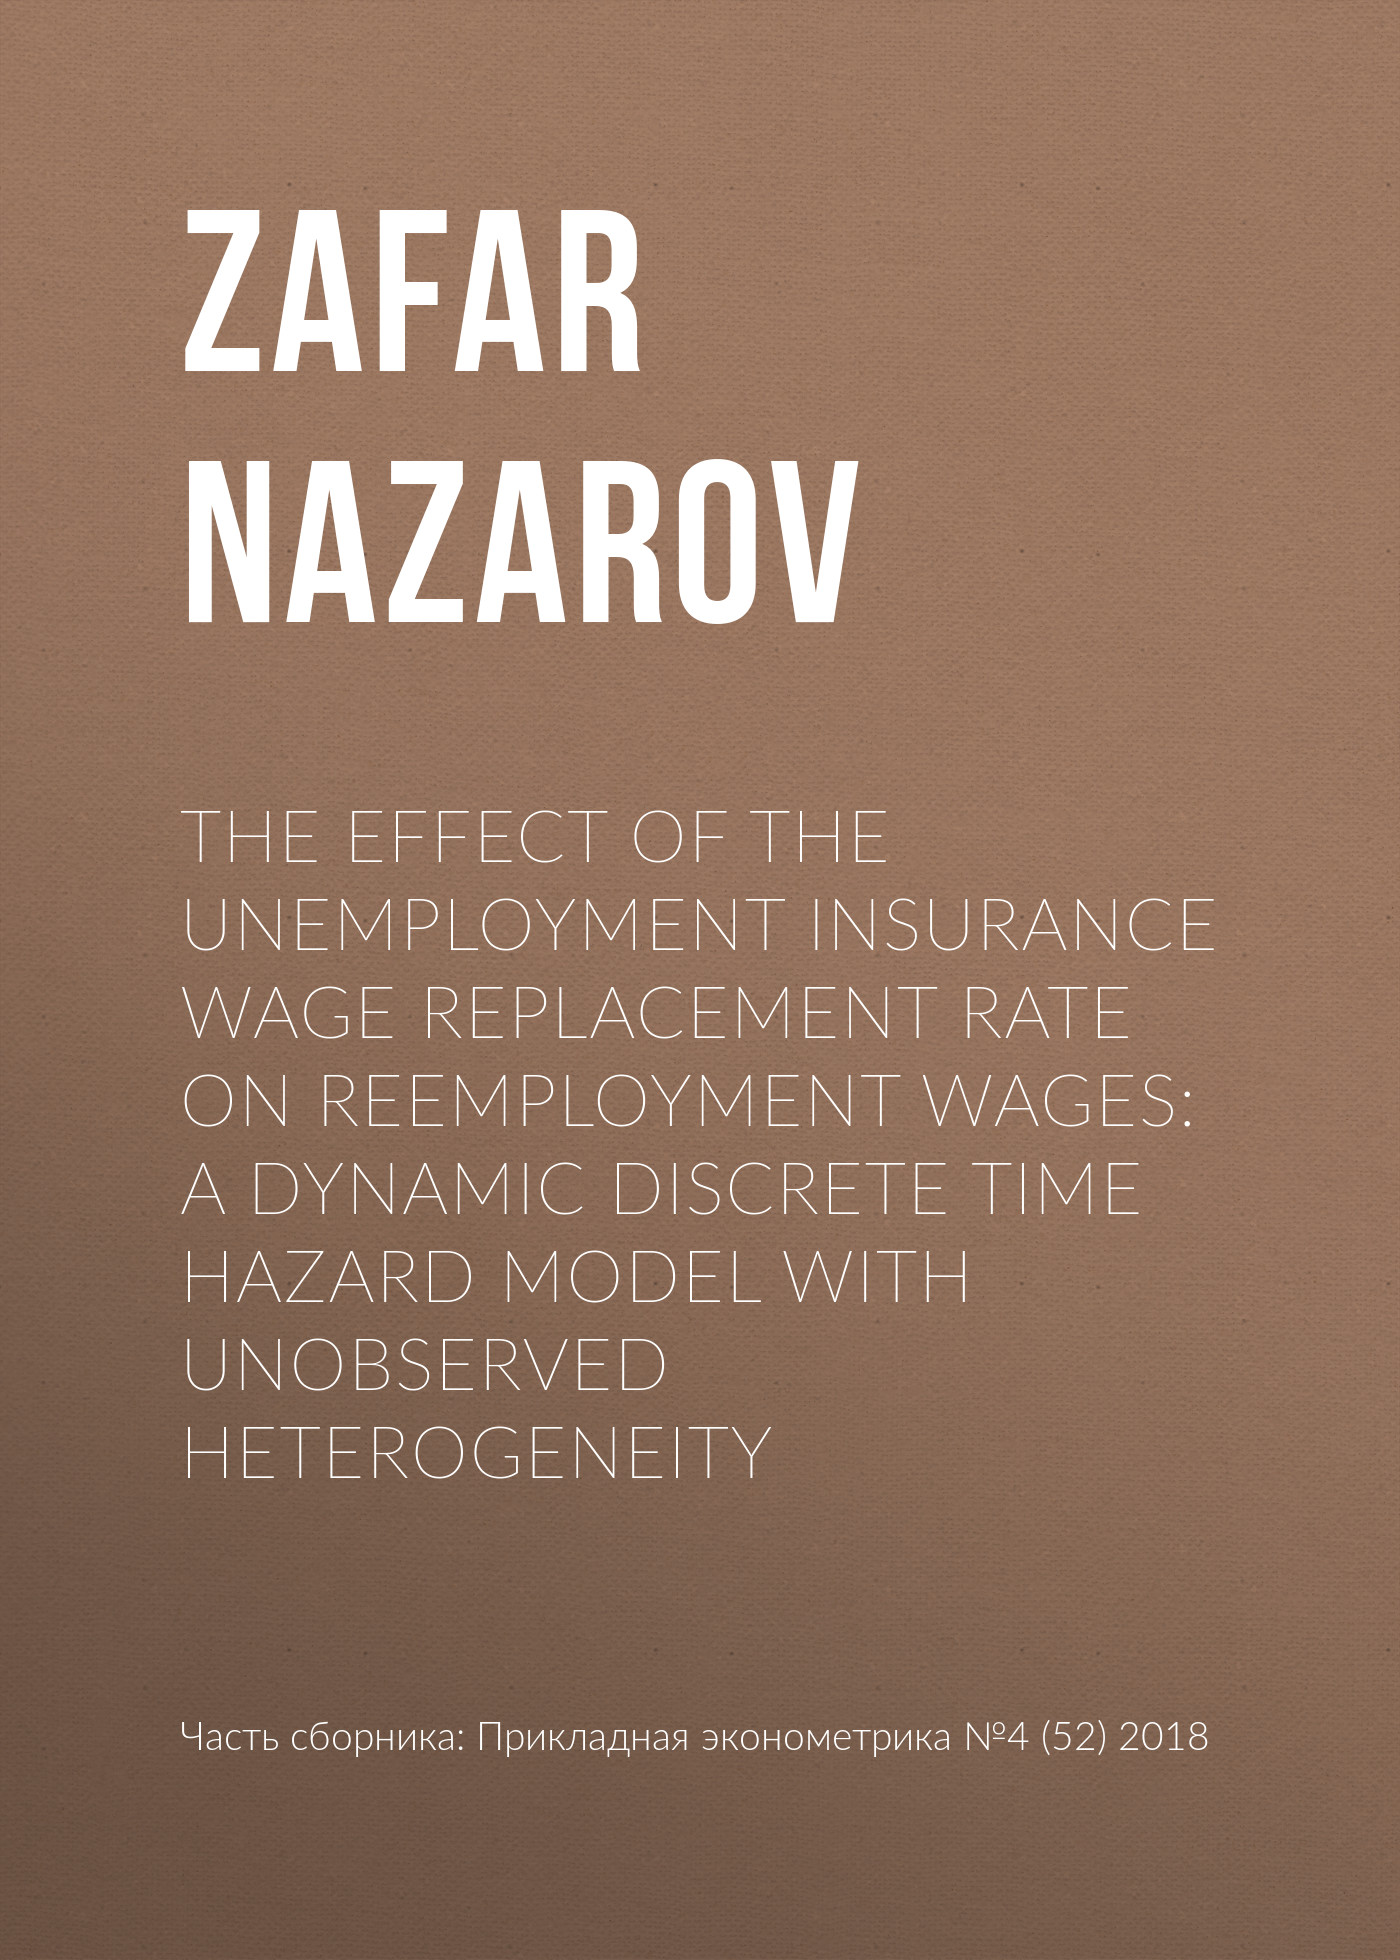 Zafar Nazarov The effect of the unemployment insurance wage replacement rate on reemployment wages: A dynamic discrete time hazard model with unobserved heterogeneity